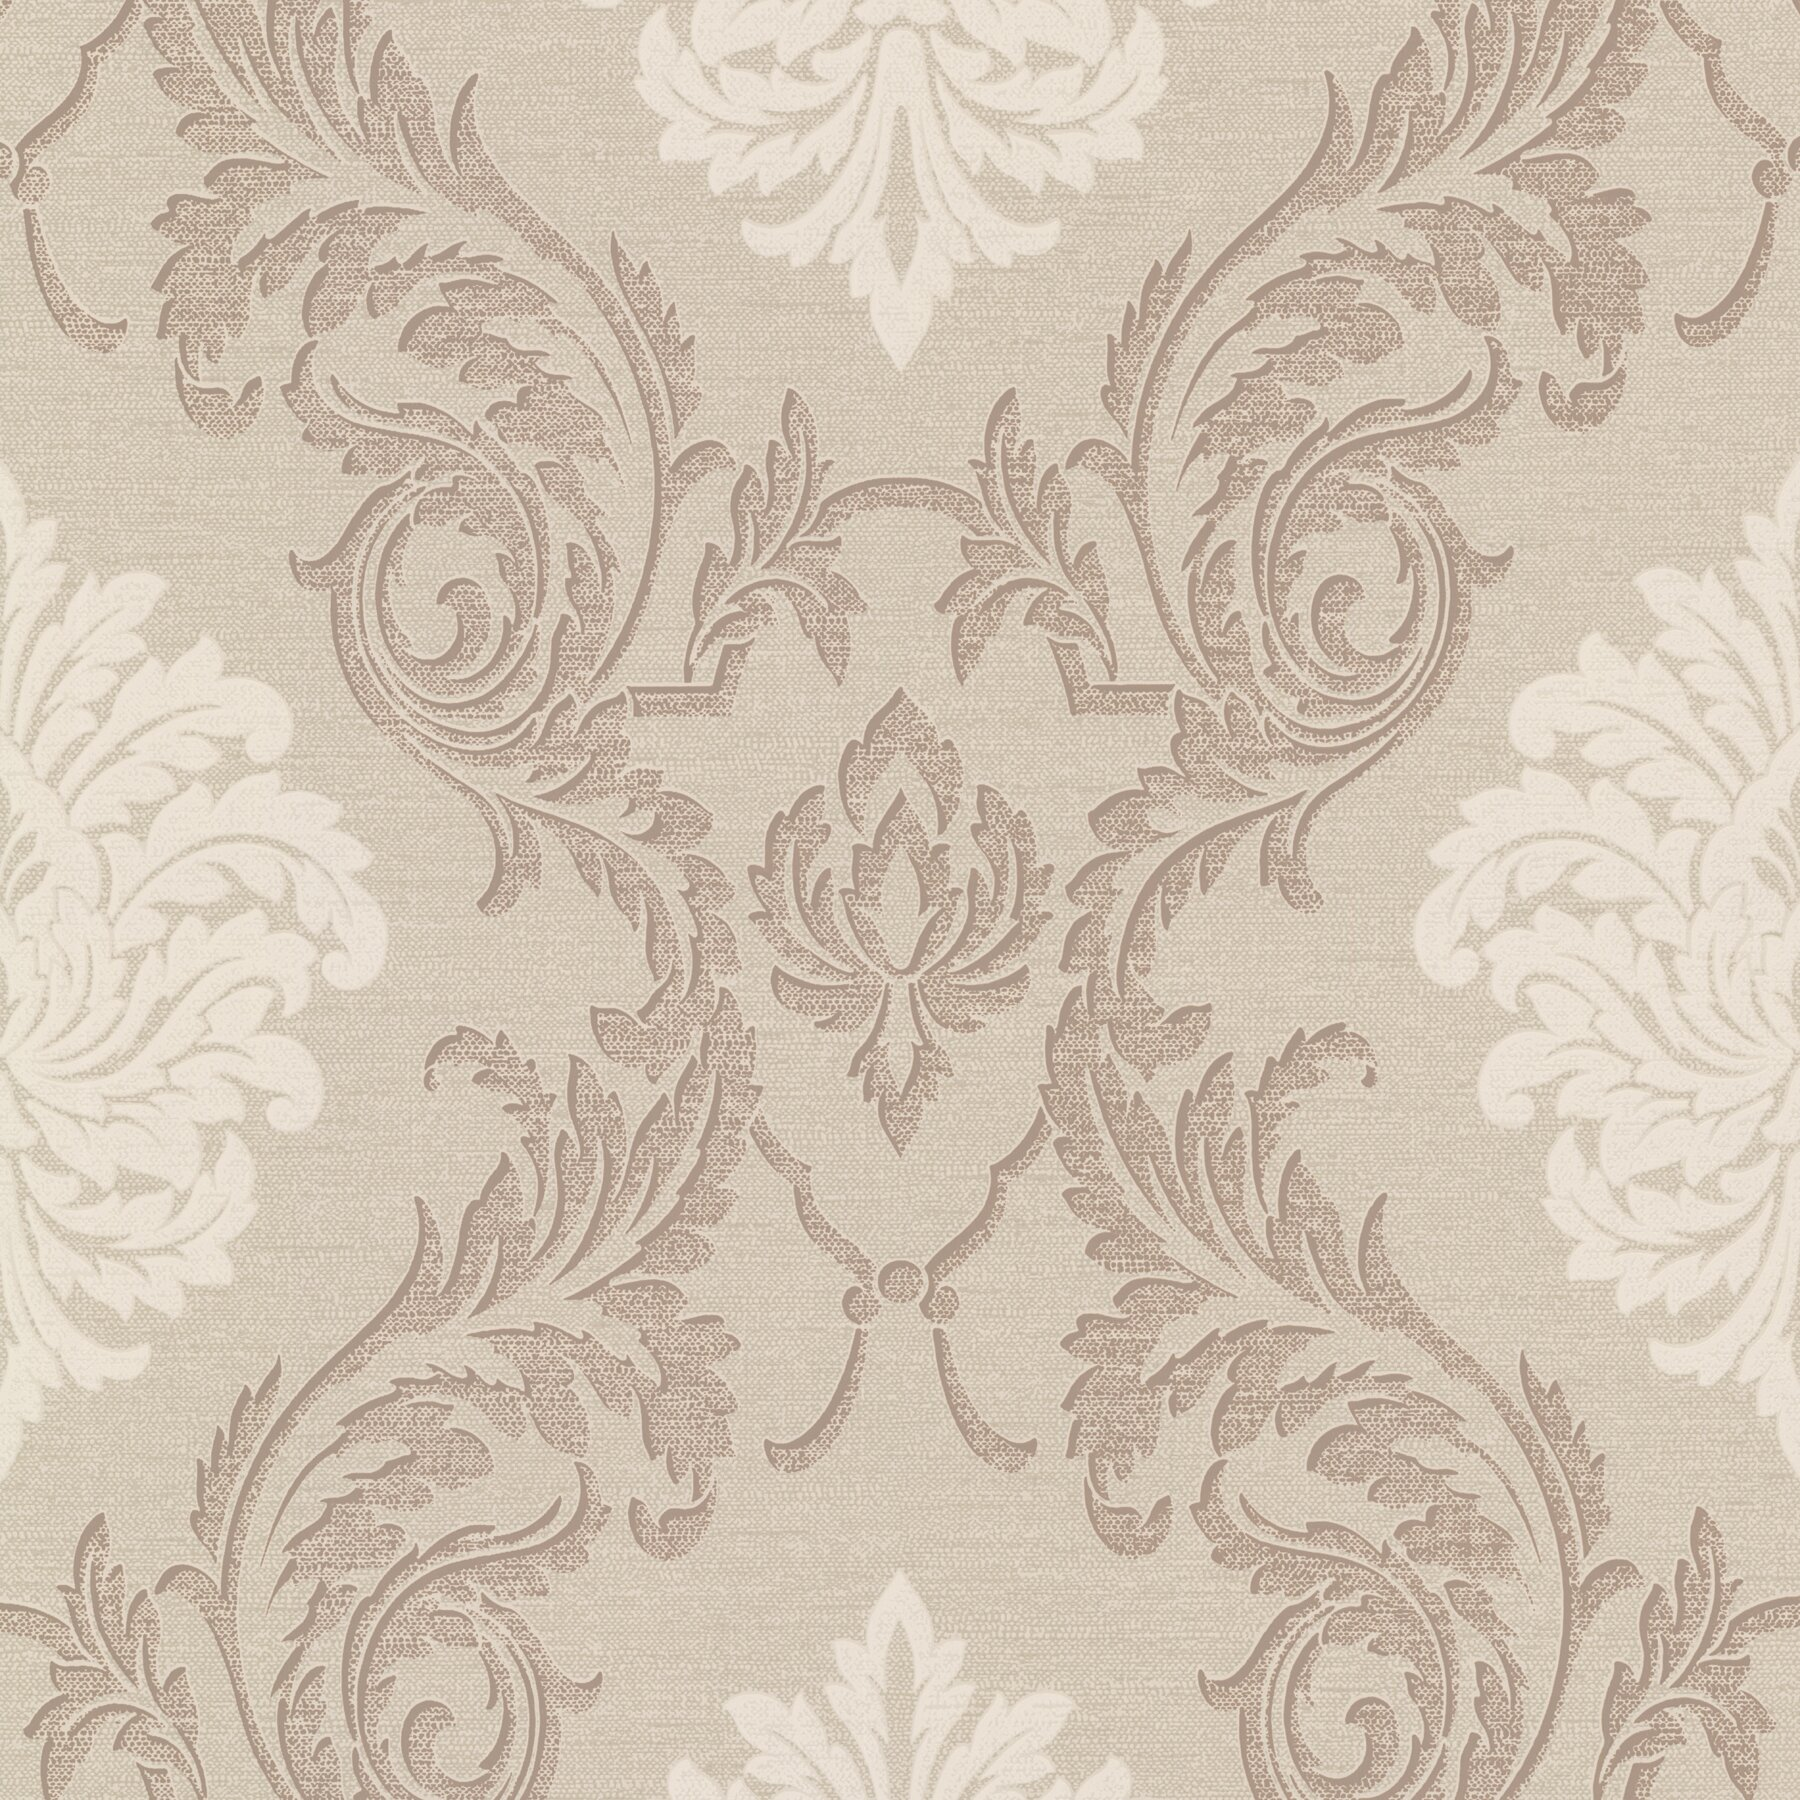 Brewster home fashions buckingham rennie 33 39 x 20 5 for 3d embossed wallpaper